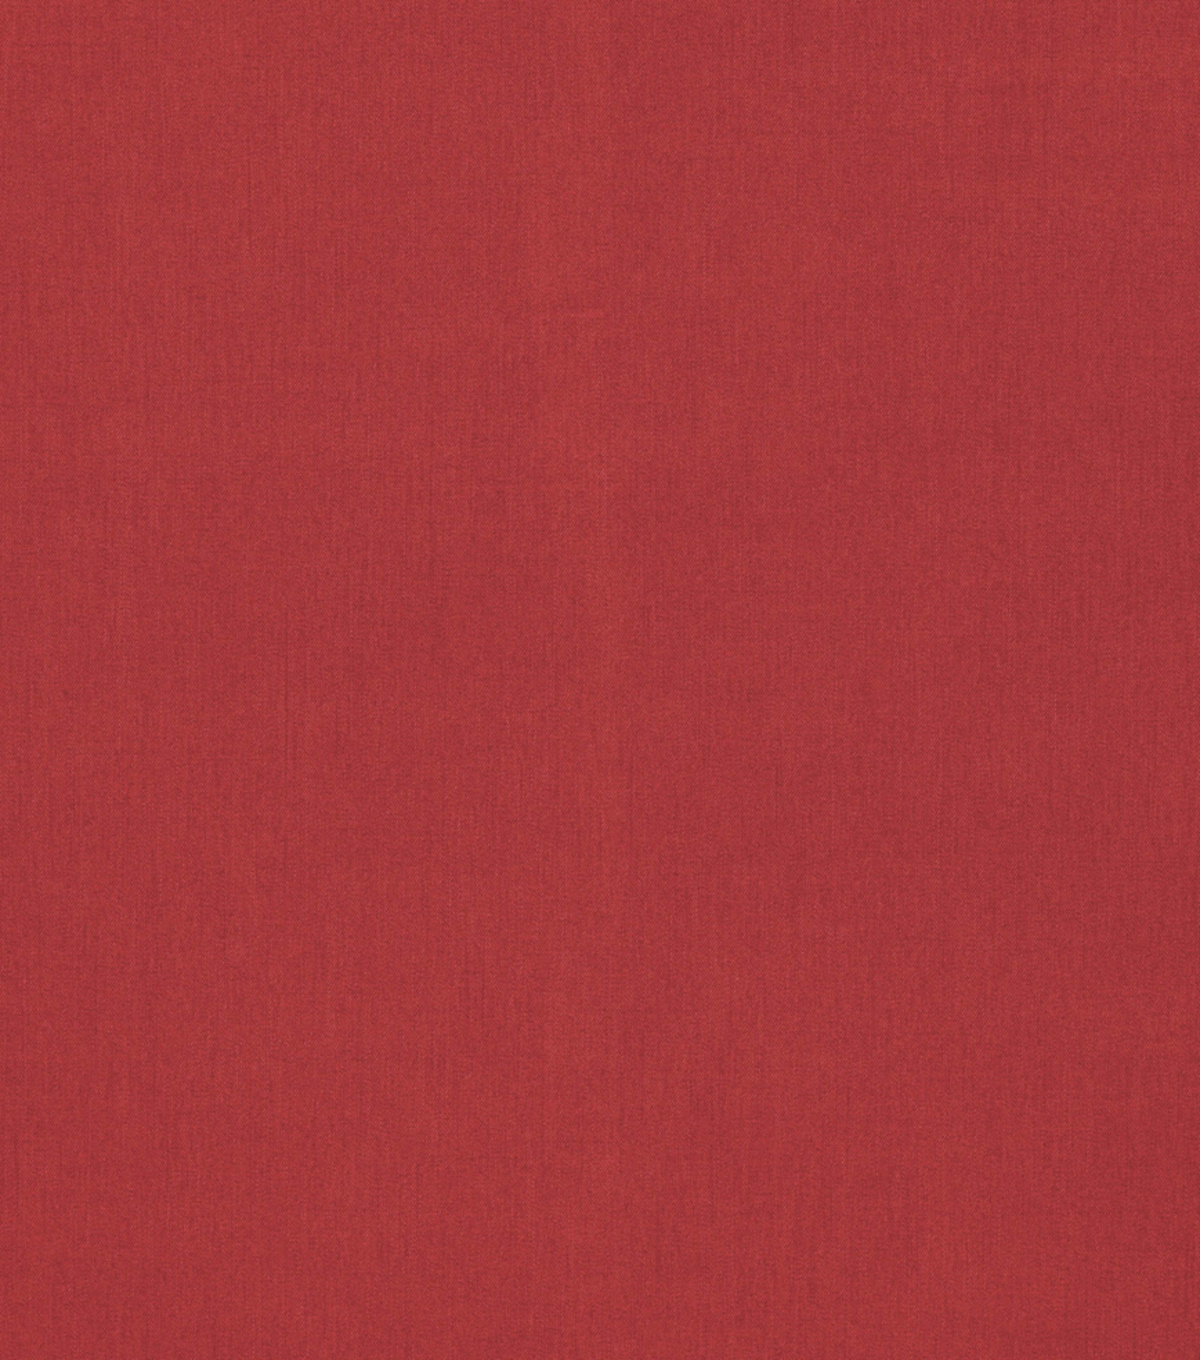 Home Decor 8\u0022x8\u0022 Fabric Swatch-Manhattan Raspberry